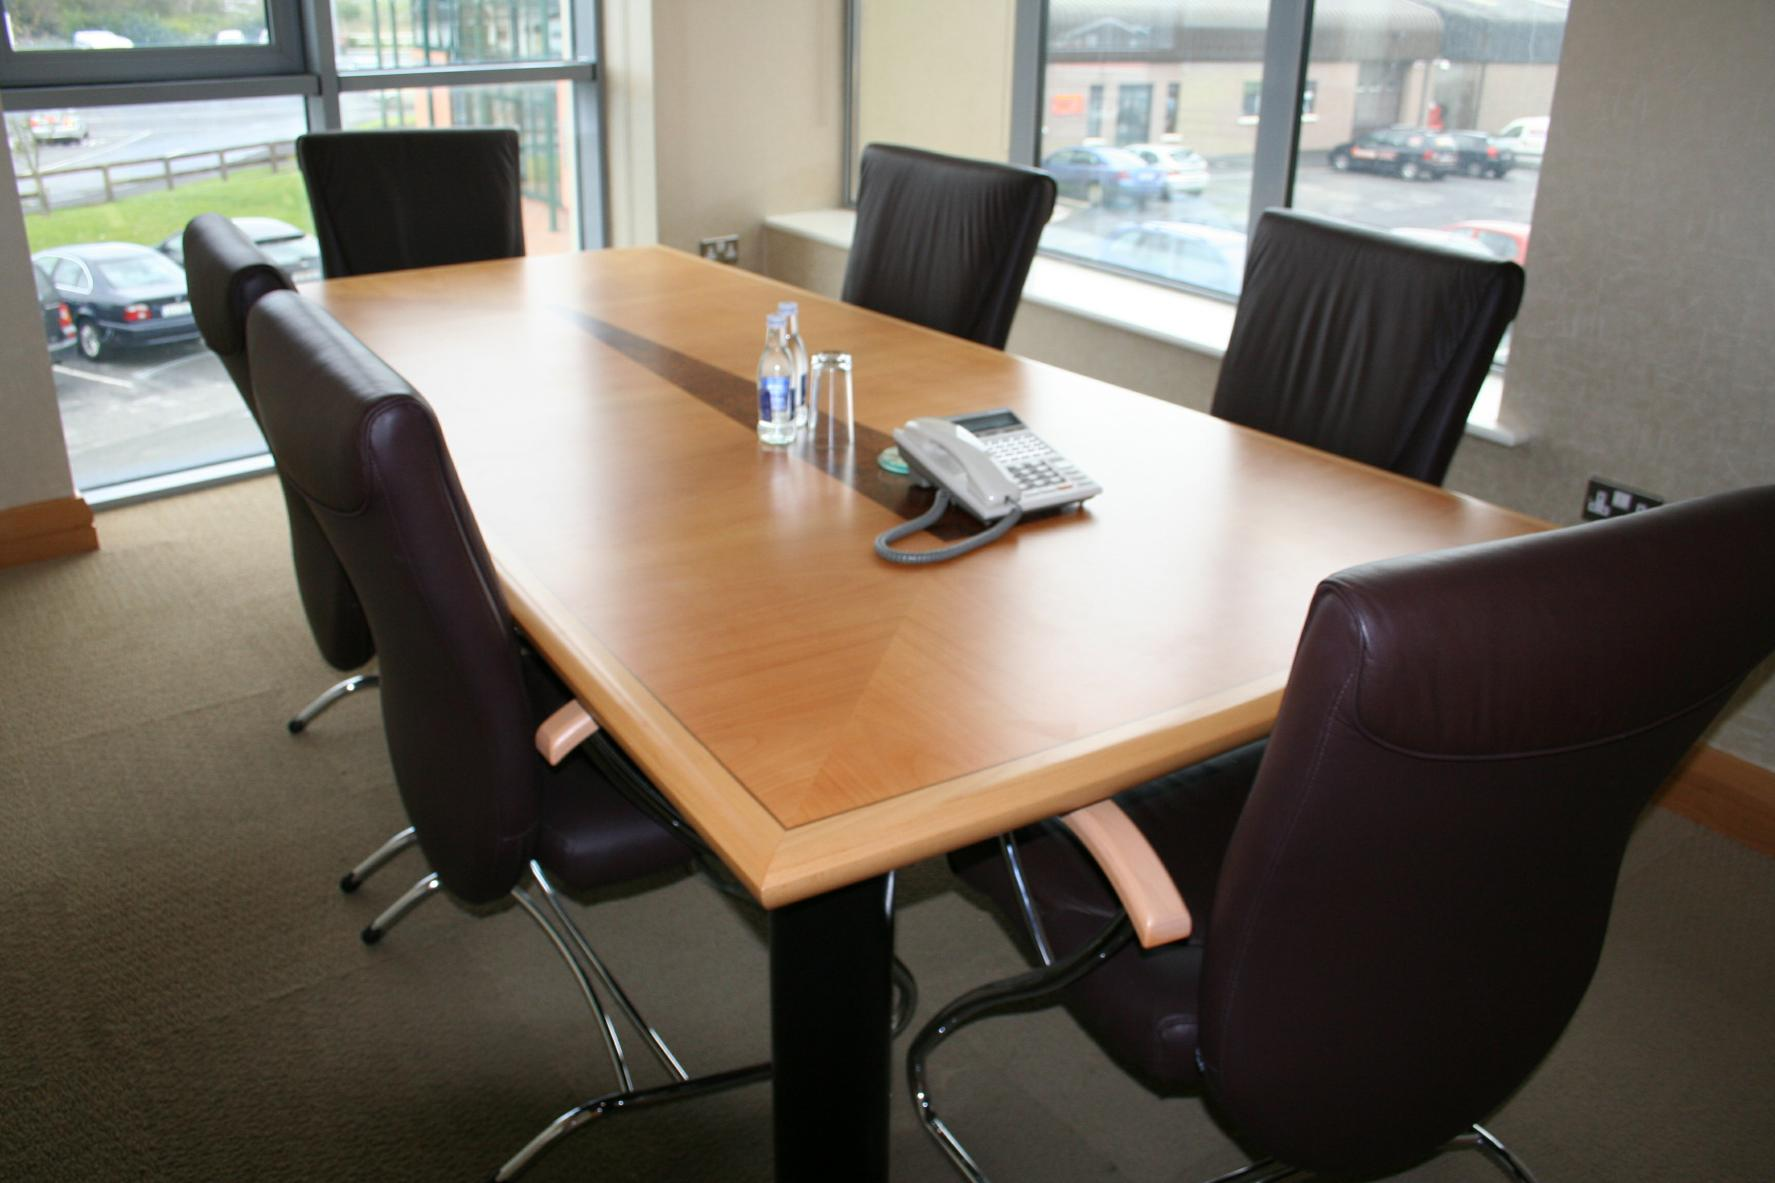 Office furniture galway - Office Furniture